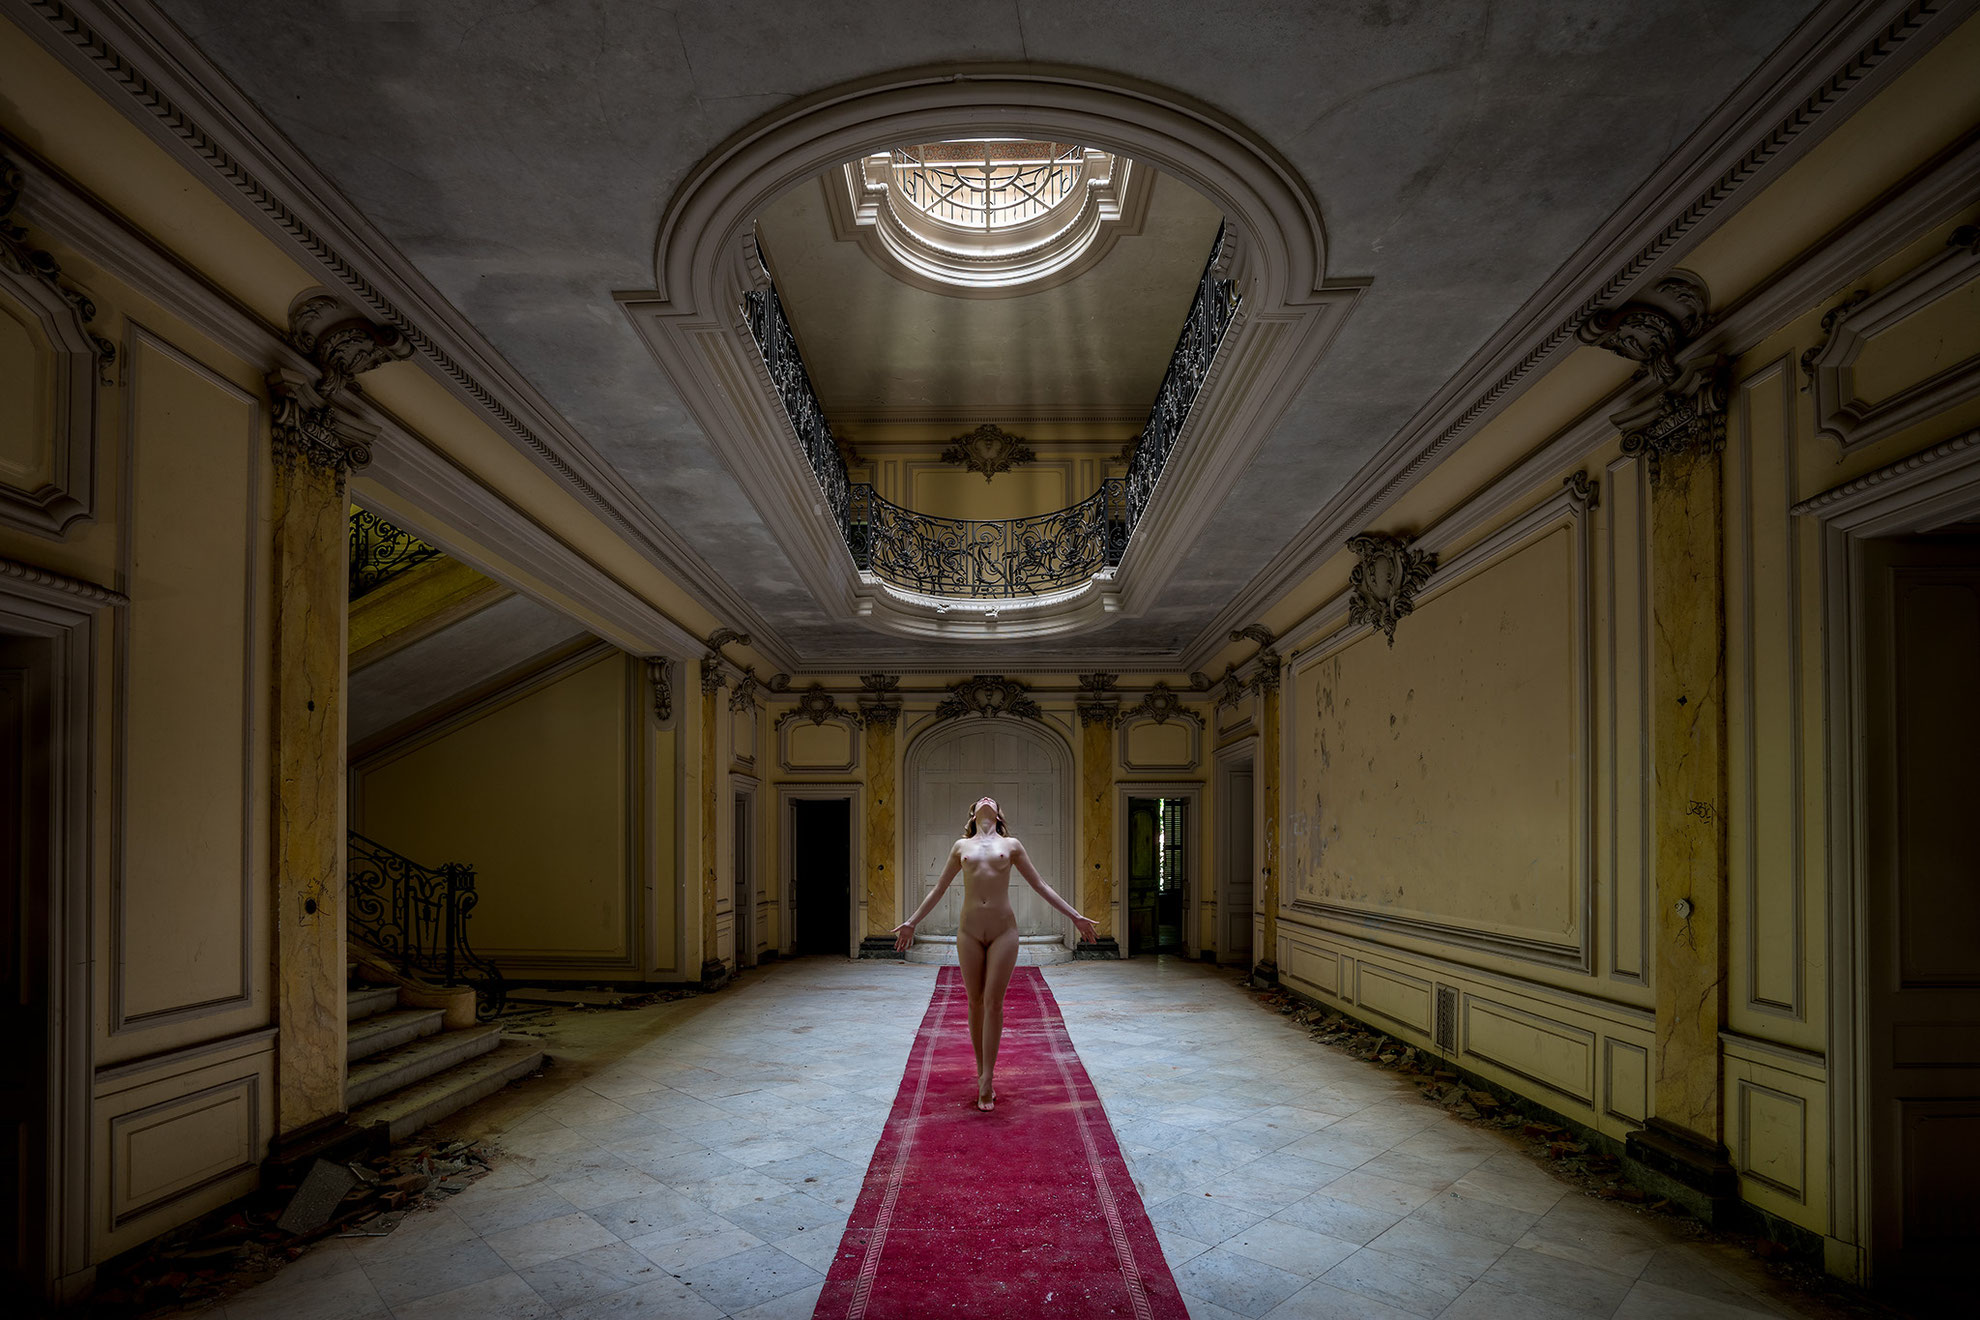 Hermes Duisburg Chateau Lumiere - Abandoned Beauty Pictures, Photography